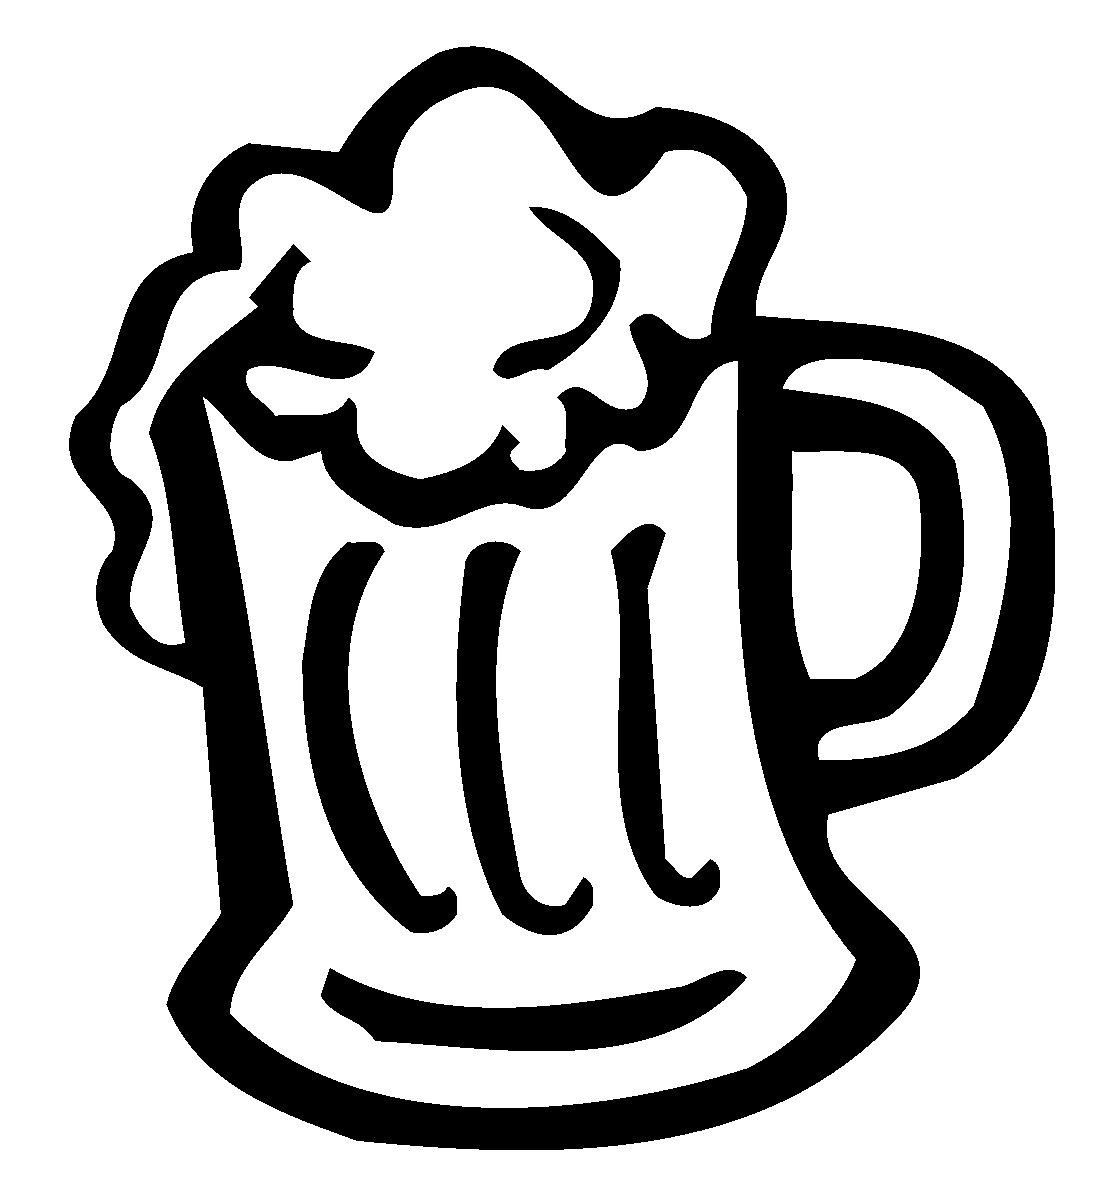 Black And White Beer Cartoon - ClipArt Best: www.clipartbest.com/black-and-white-beer-cartoon